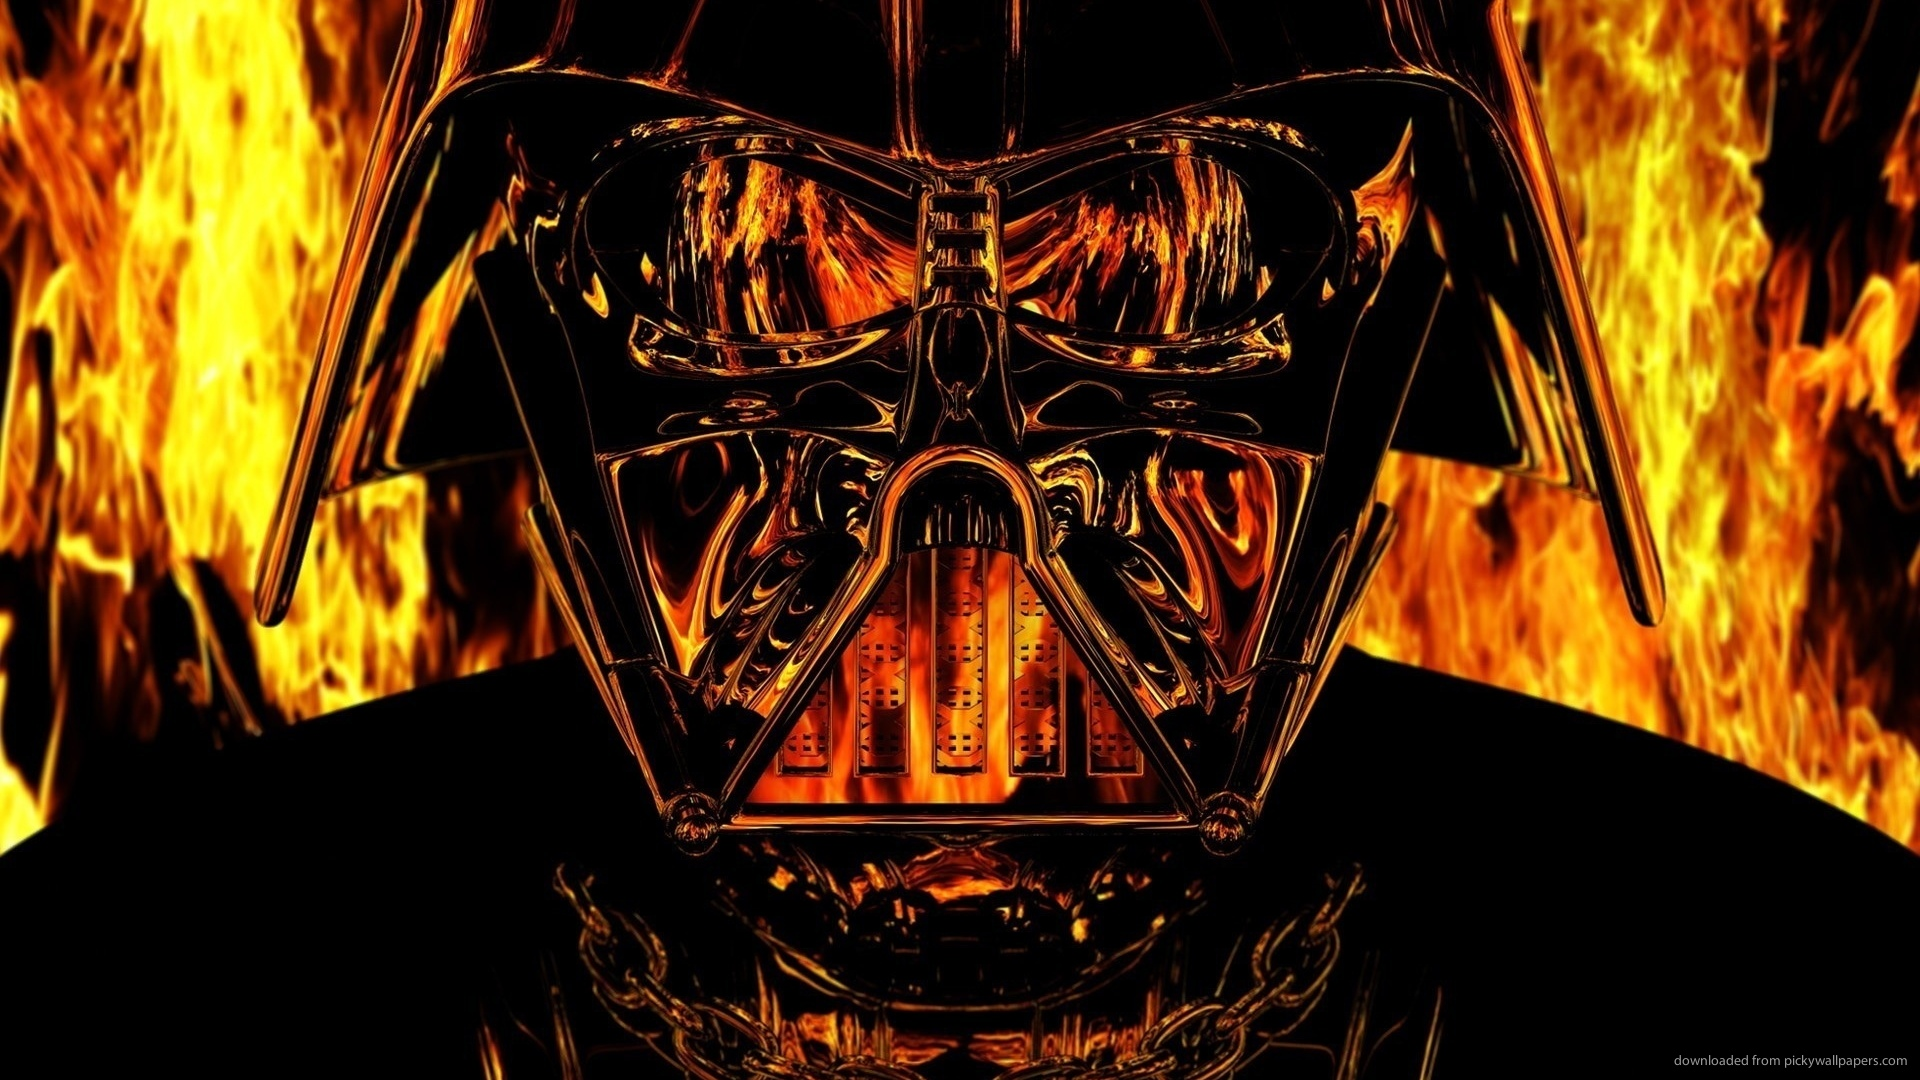 Darth-Vader-God-And-Other-Fathers-wallpaper-wpc5803955